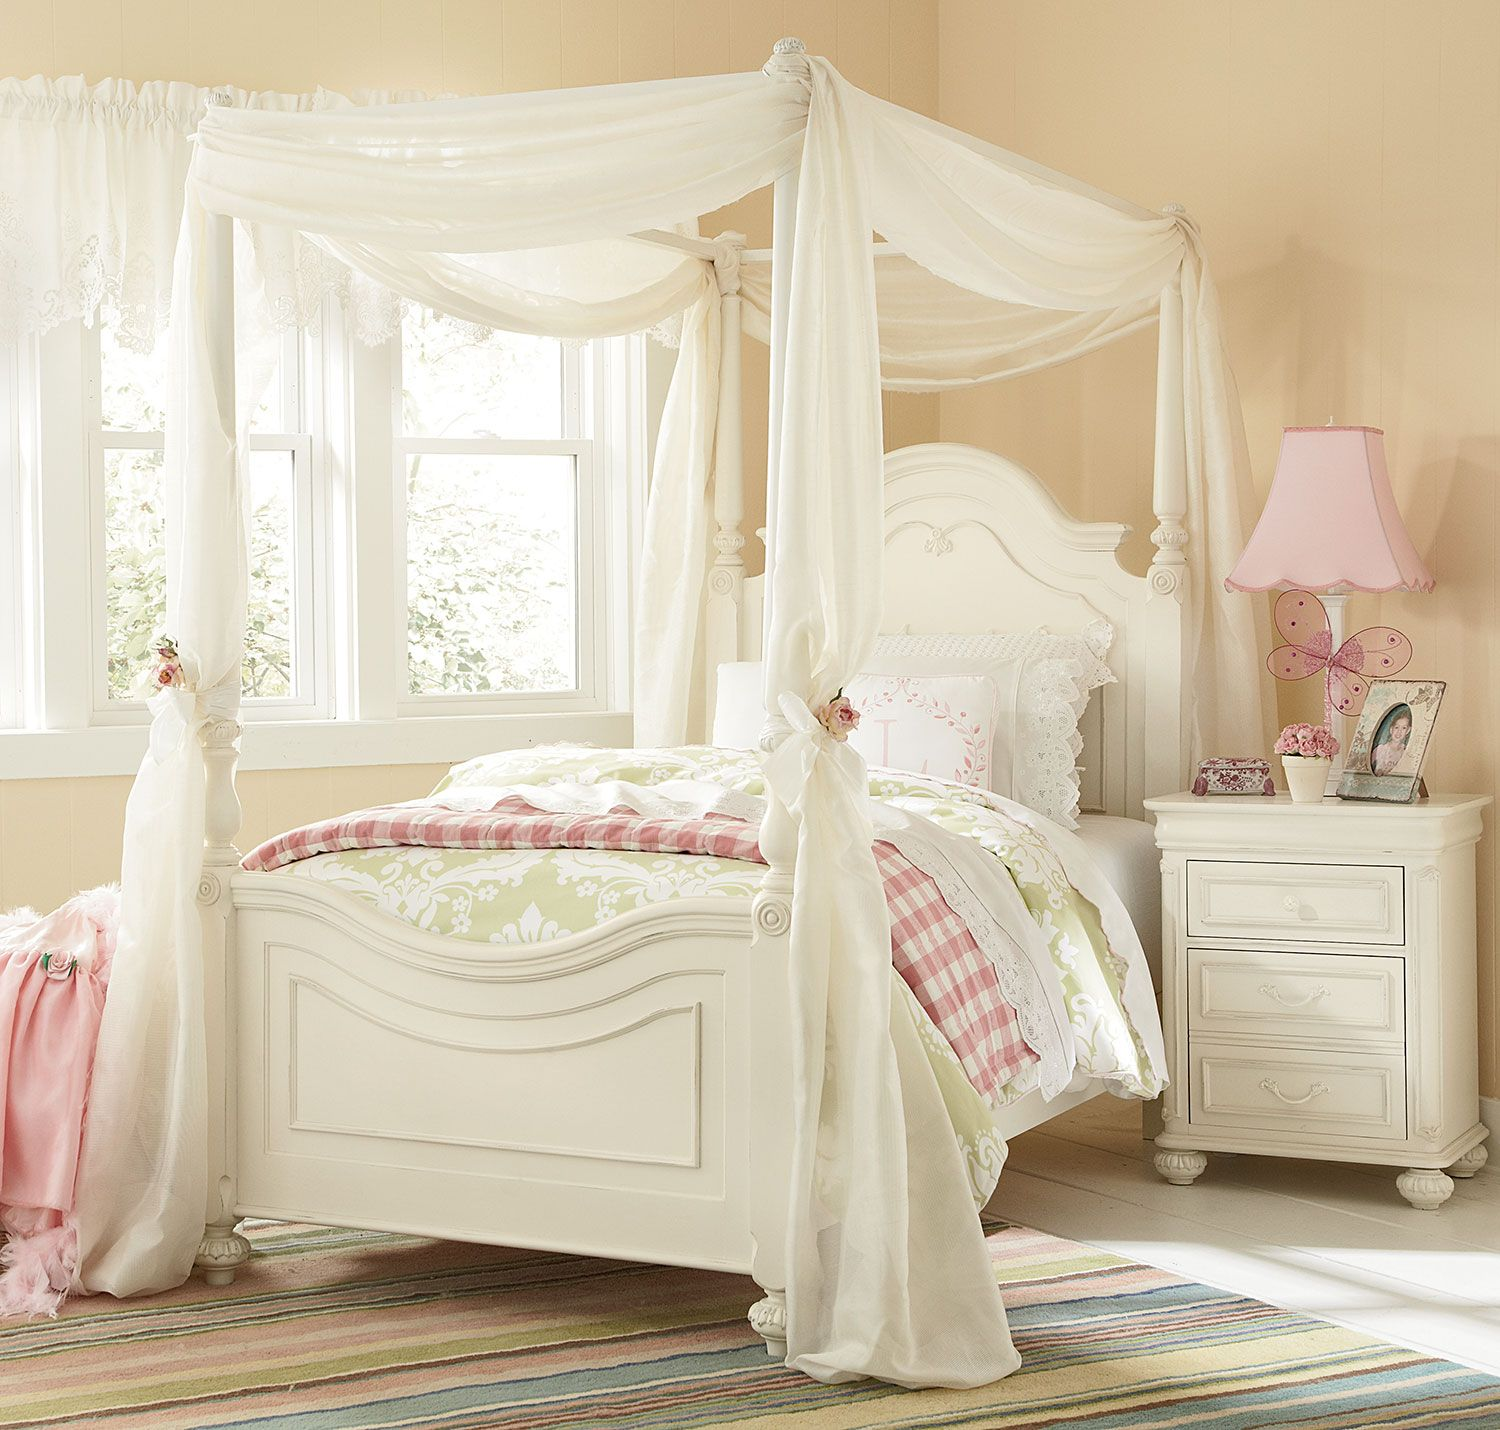 Amber Twin Canopy Bed   Antique White   Girl s bedroom   Pinterest     Bedroom Furniture   Amber Twin Canopy Bed   Antique White